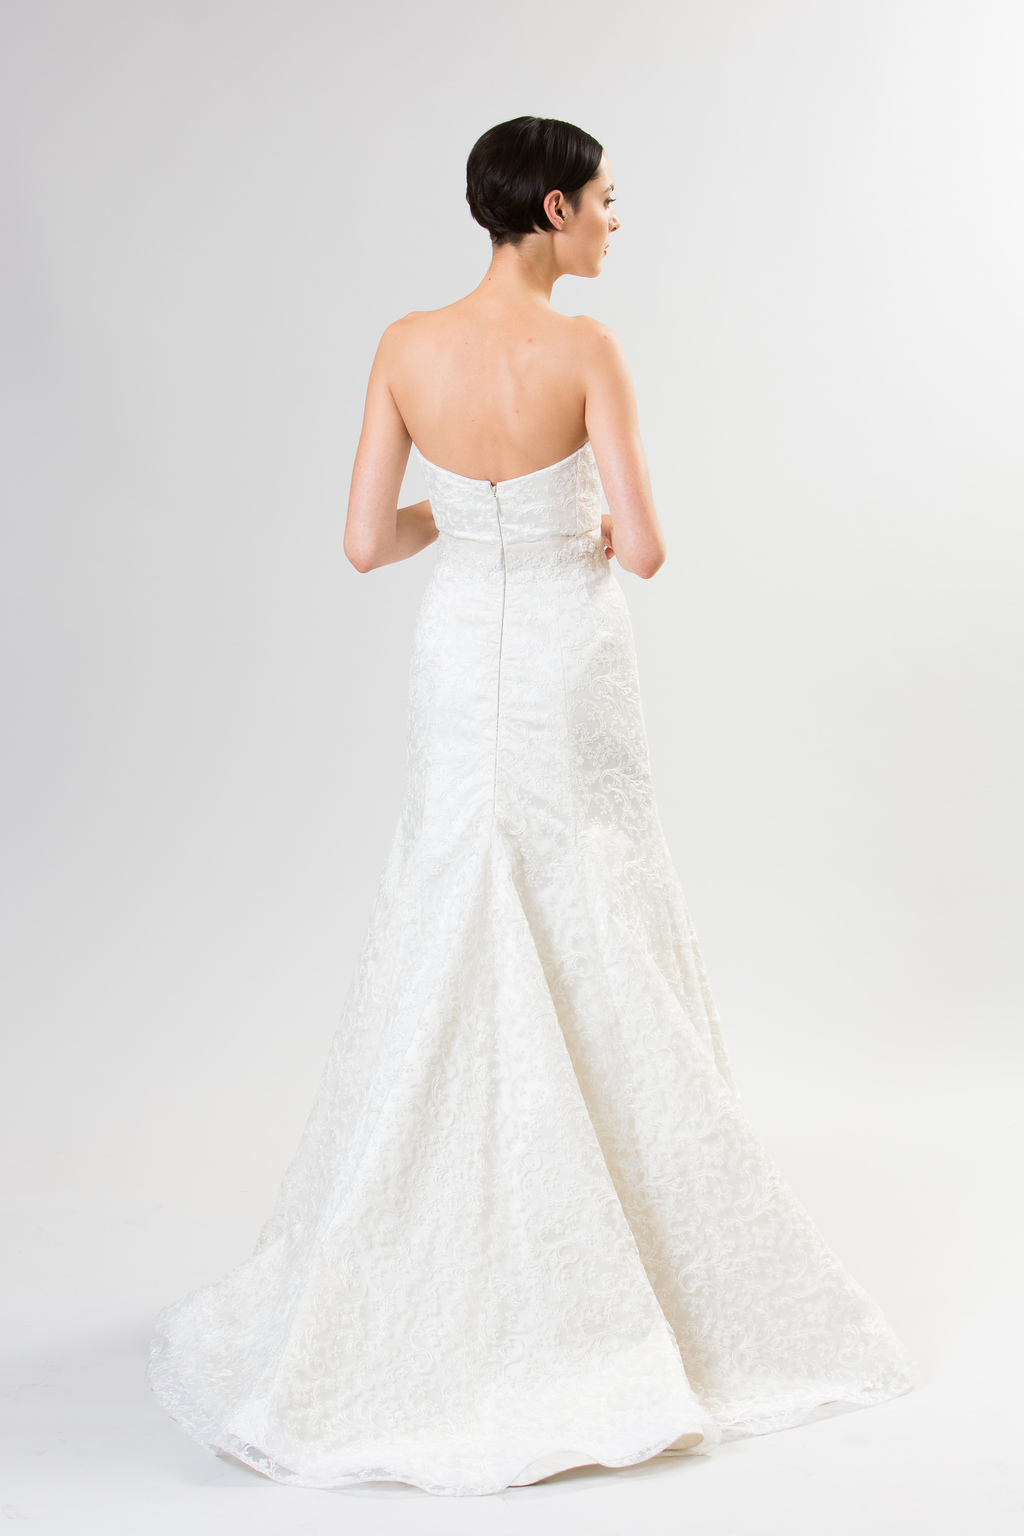 Junko-yoshioka-summer-spring-2014-wedding-dress-suzette_3.full